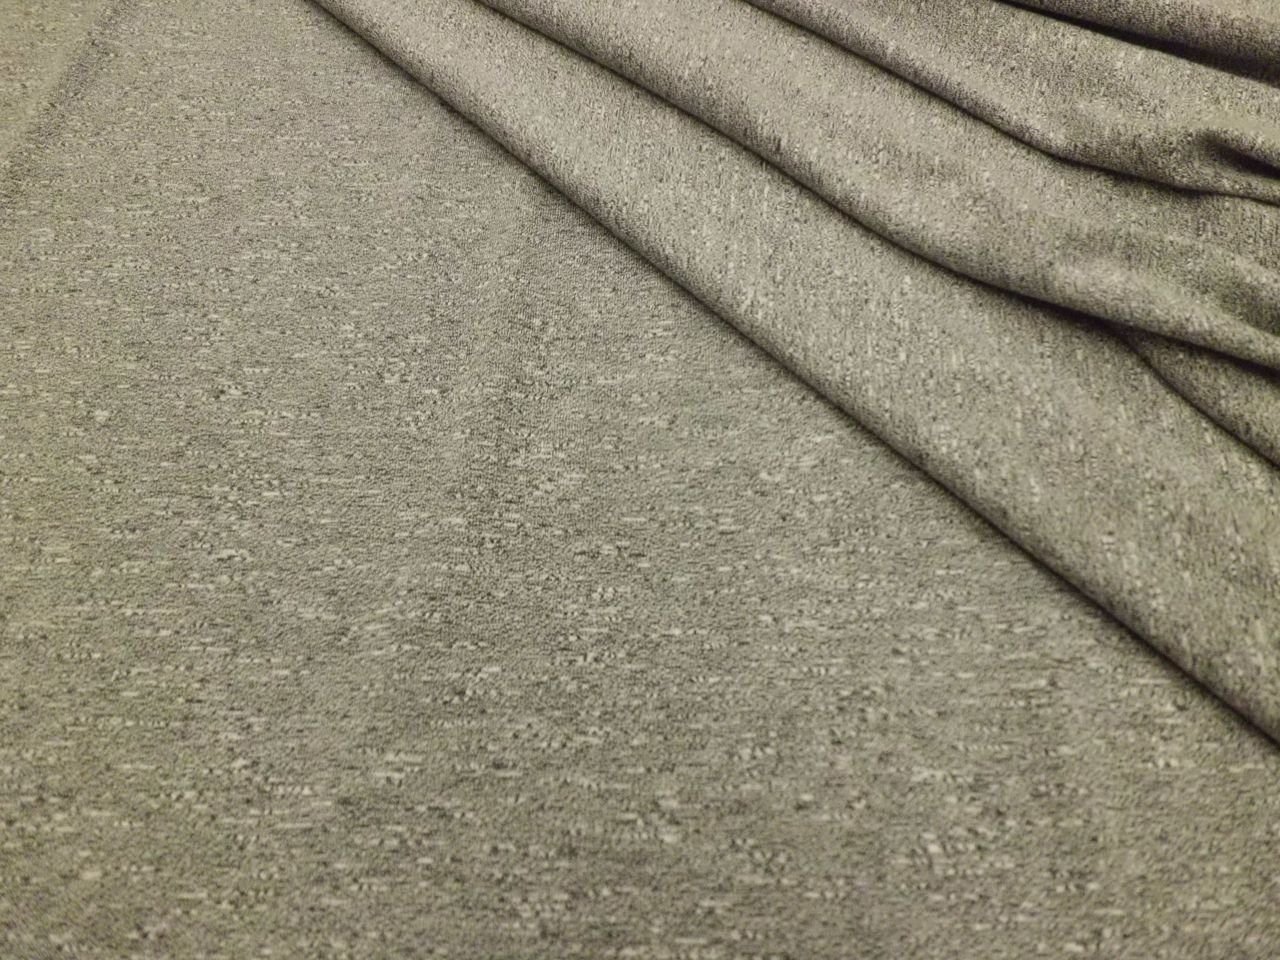 Rayon, Polyester, and Spandex Jersey Slub in Heathered Grey